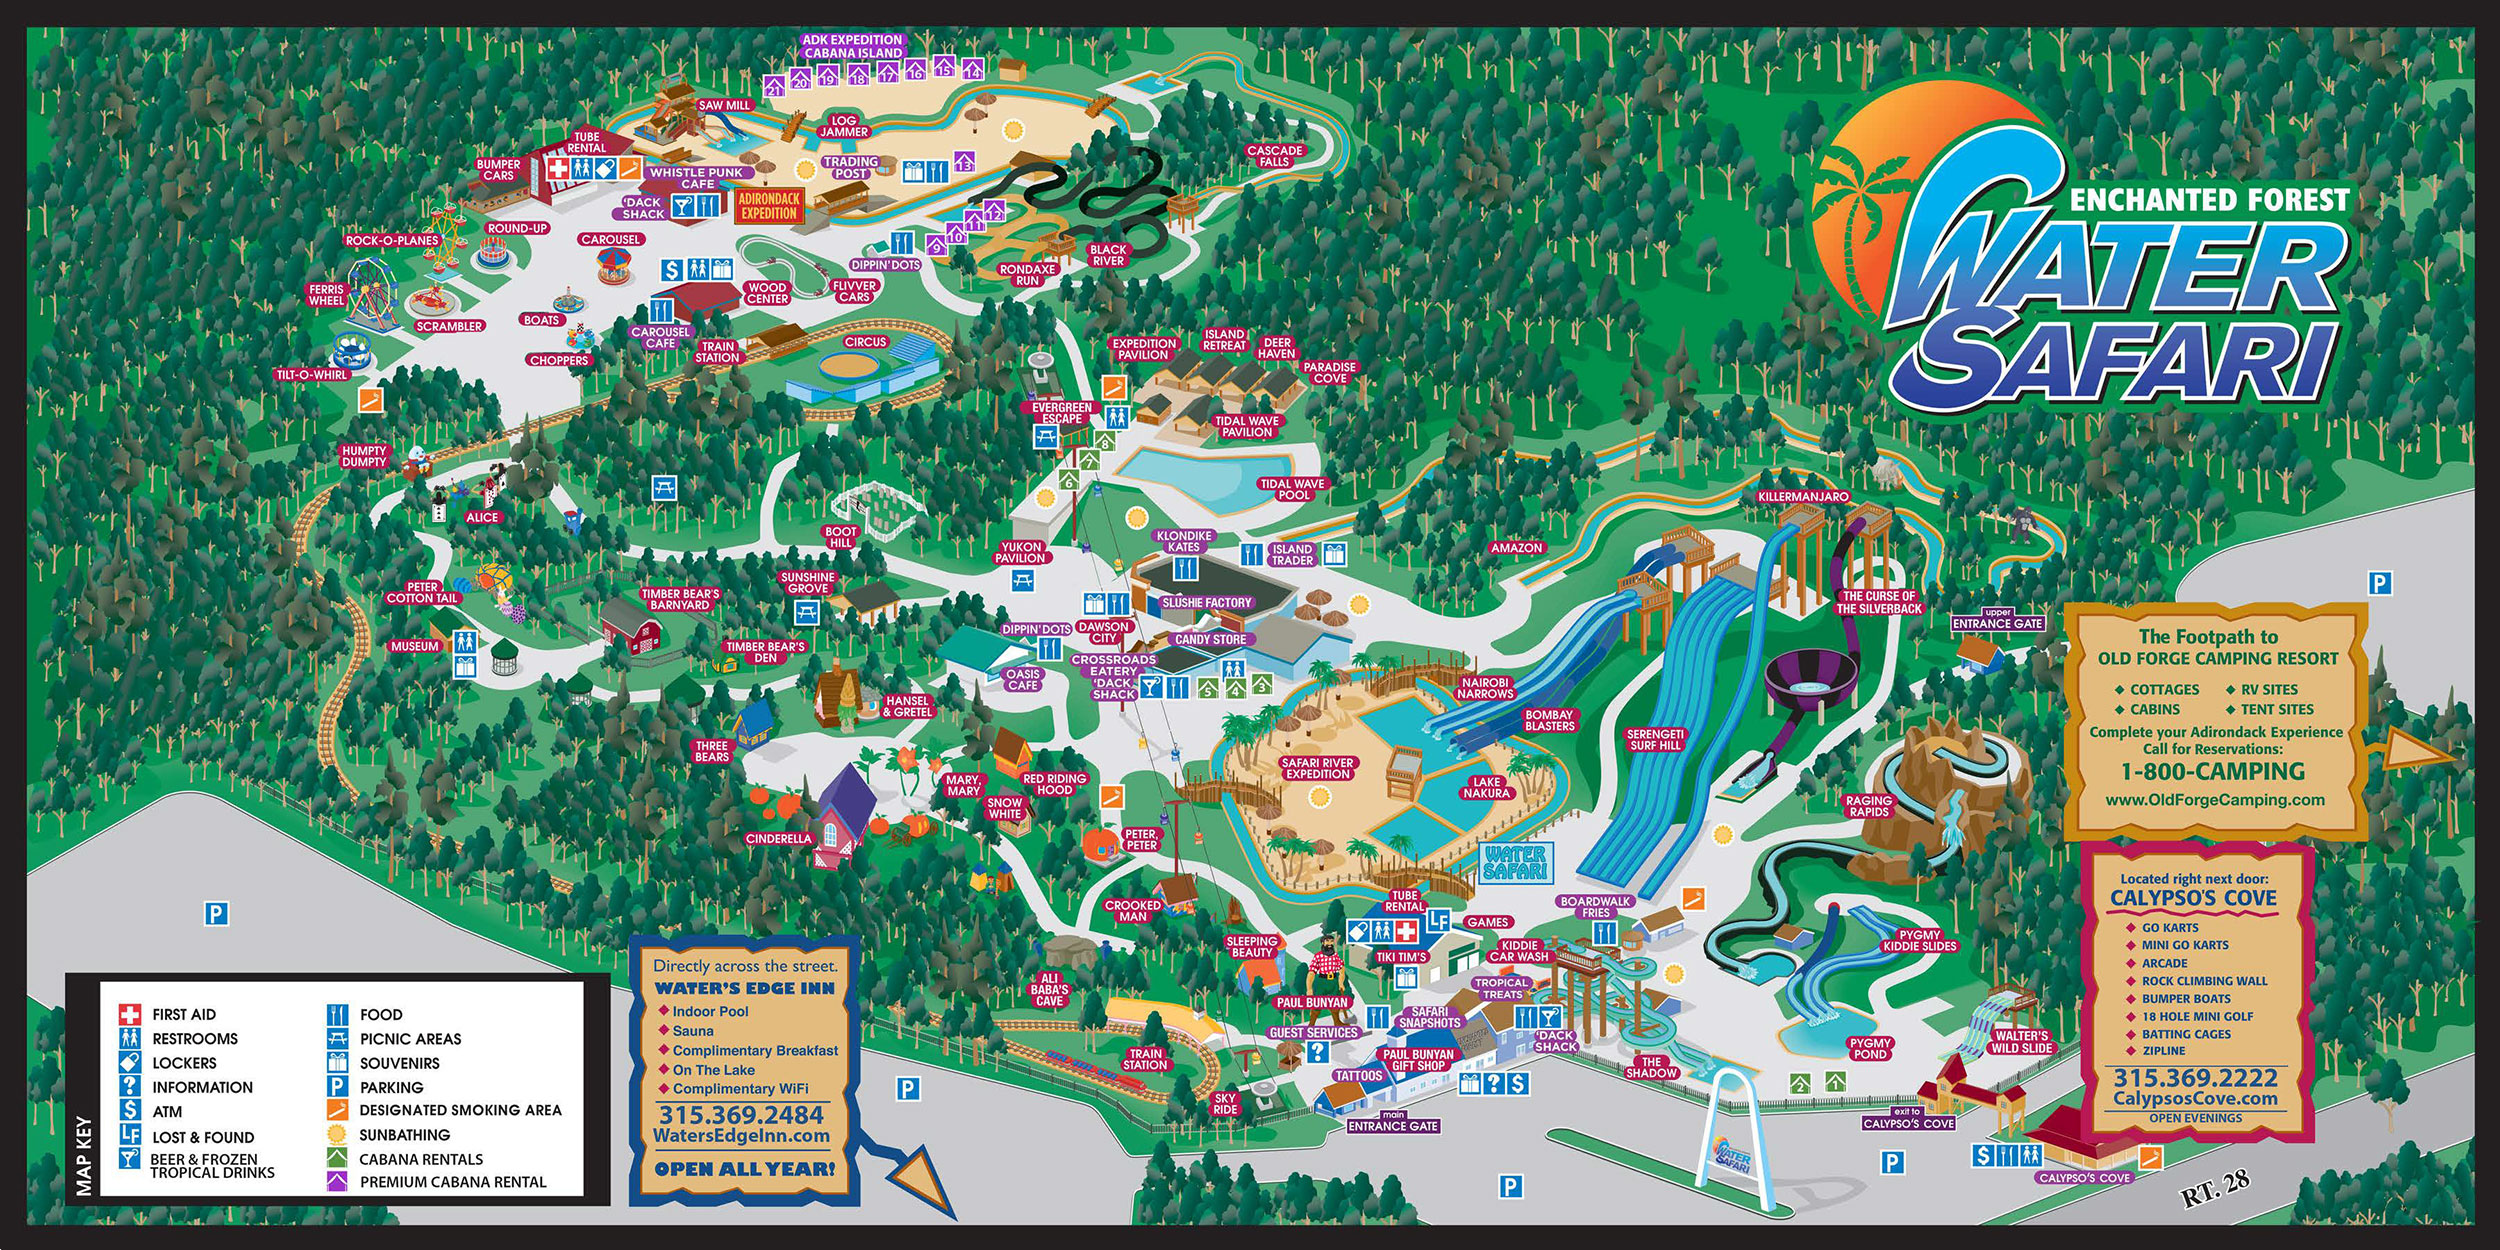 Interactive Park Map - Enchanted Forest Water Safari on